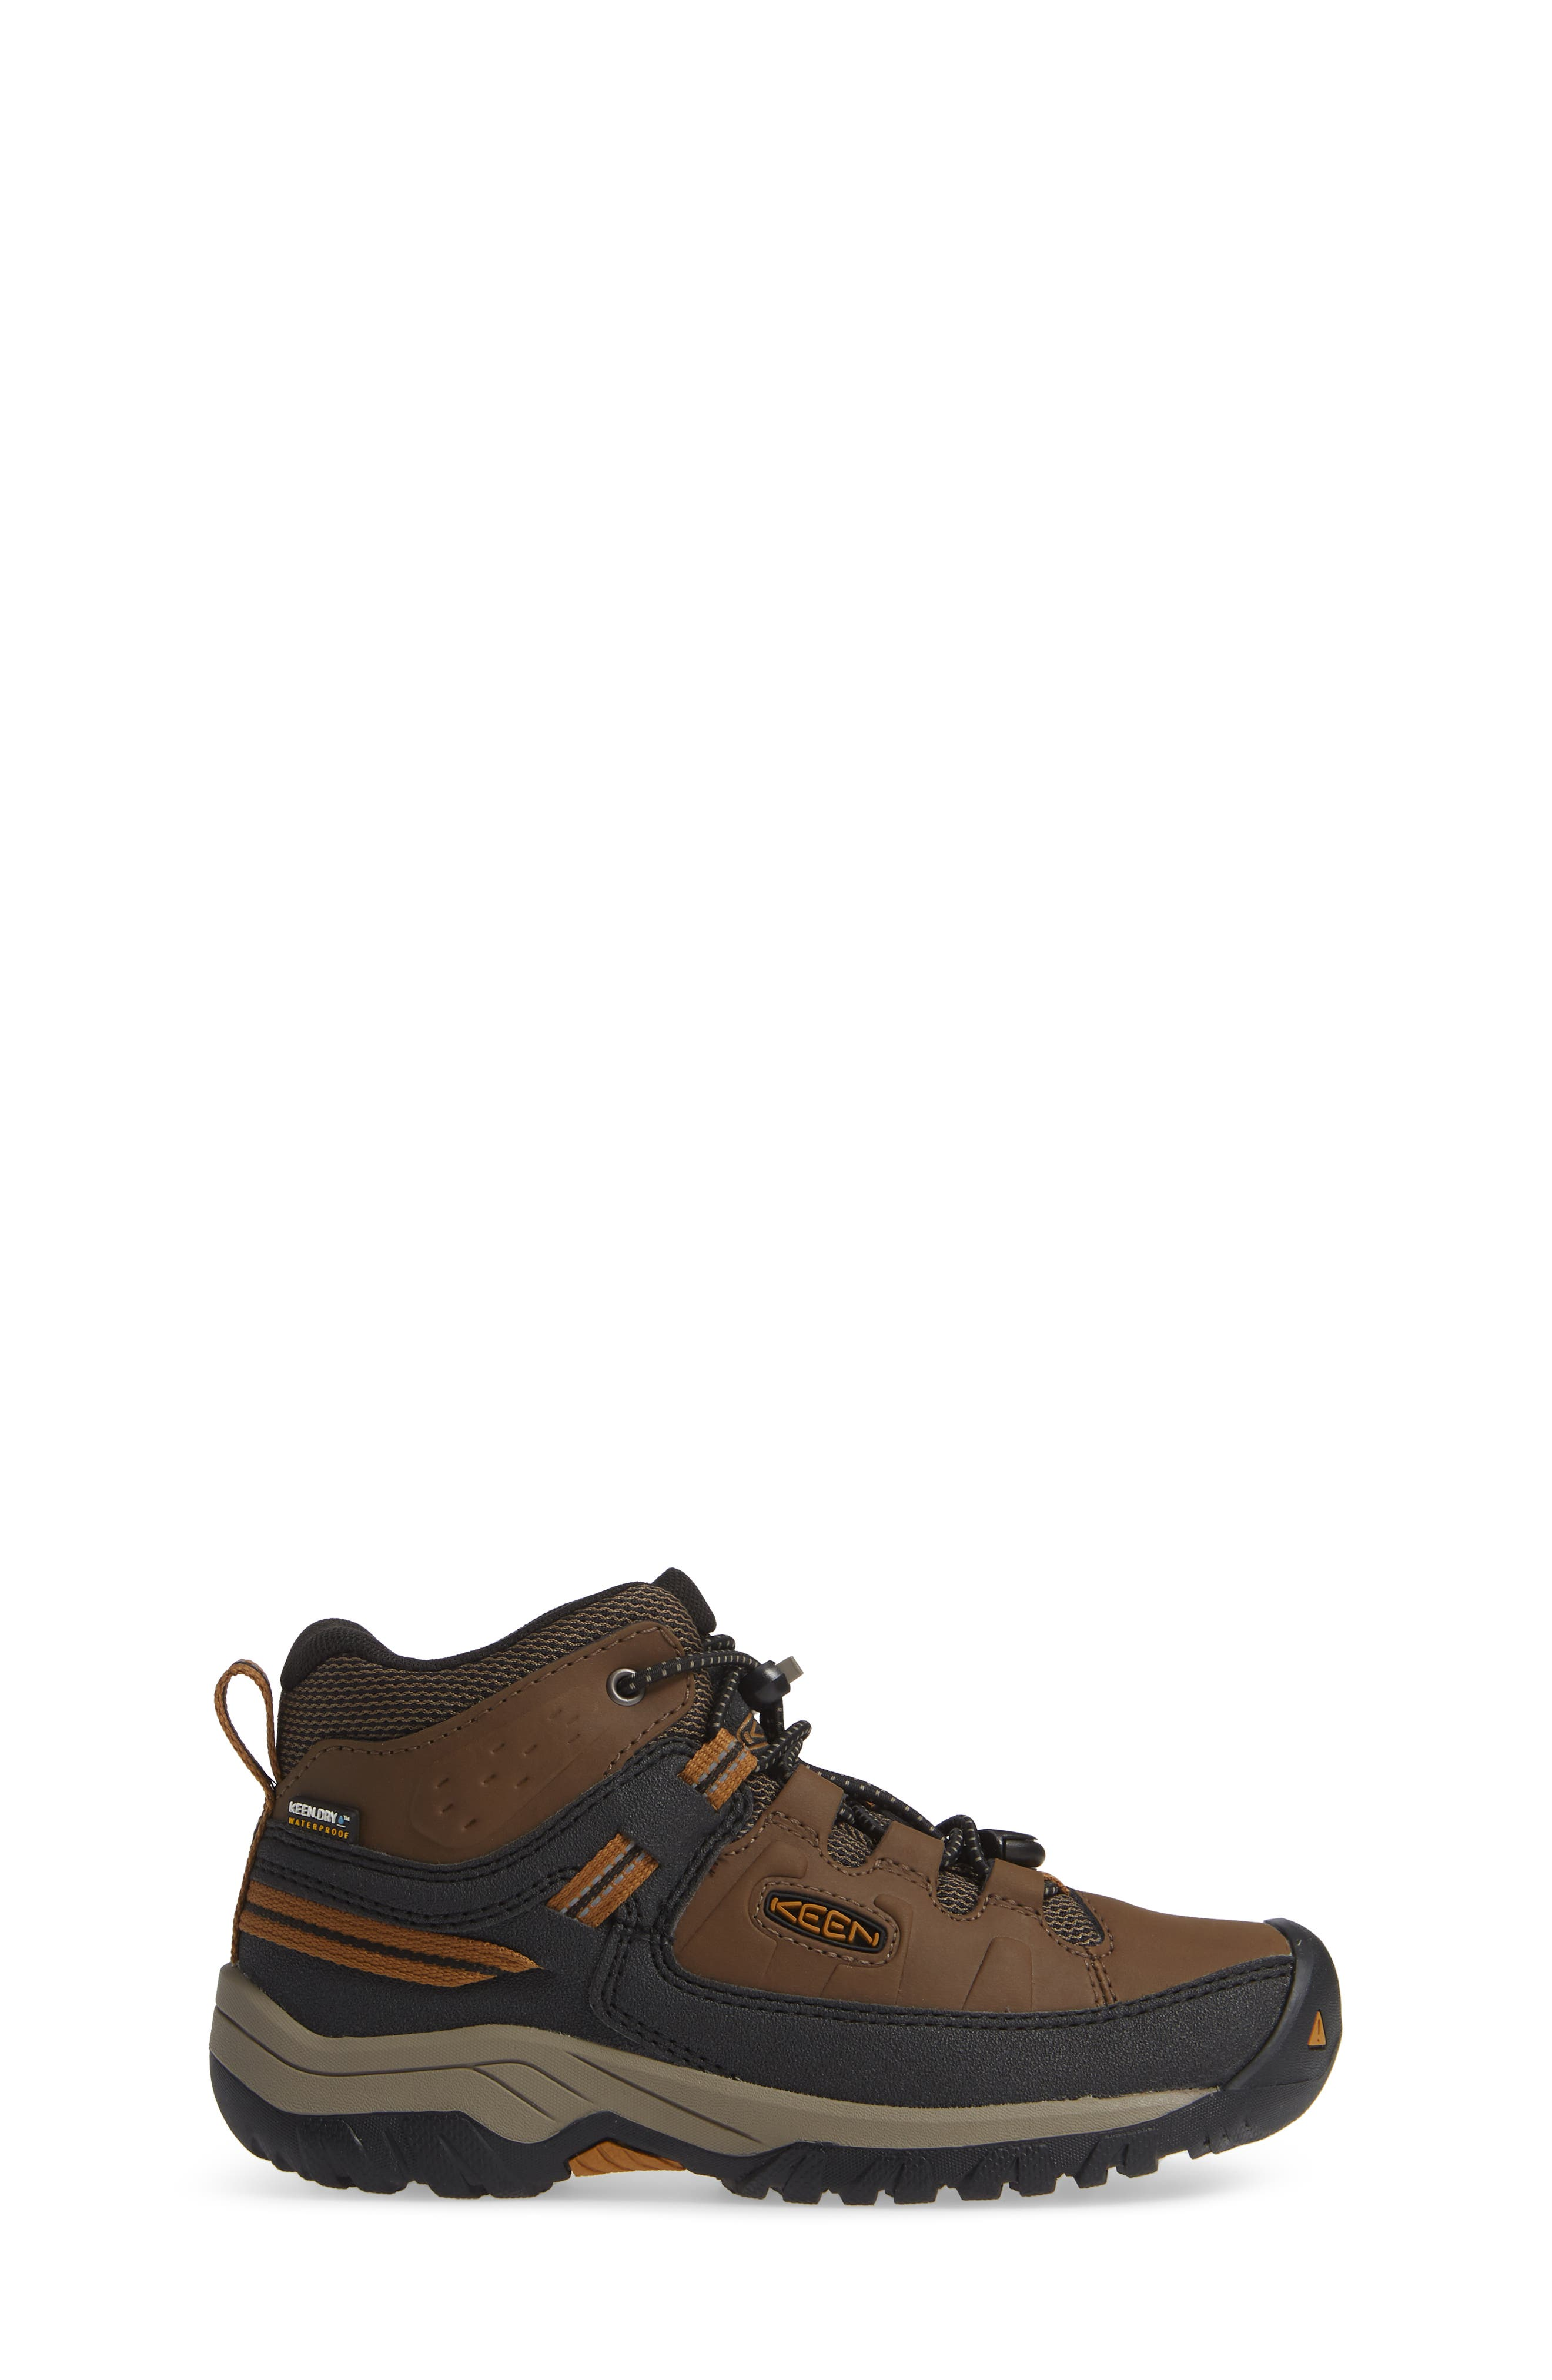 Targhee Mid Waterproof Hiking Boot,                             Alternate thumbnail 3, color,                             DARK EARTH/ GOLDEN BROWN